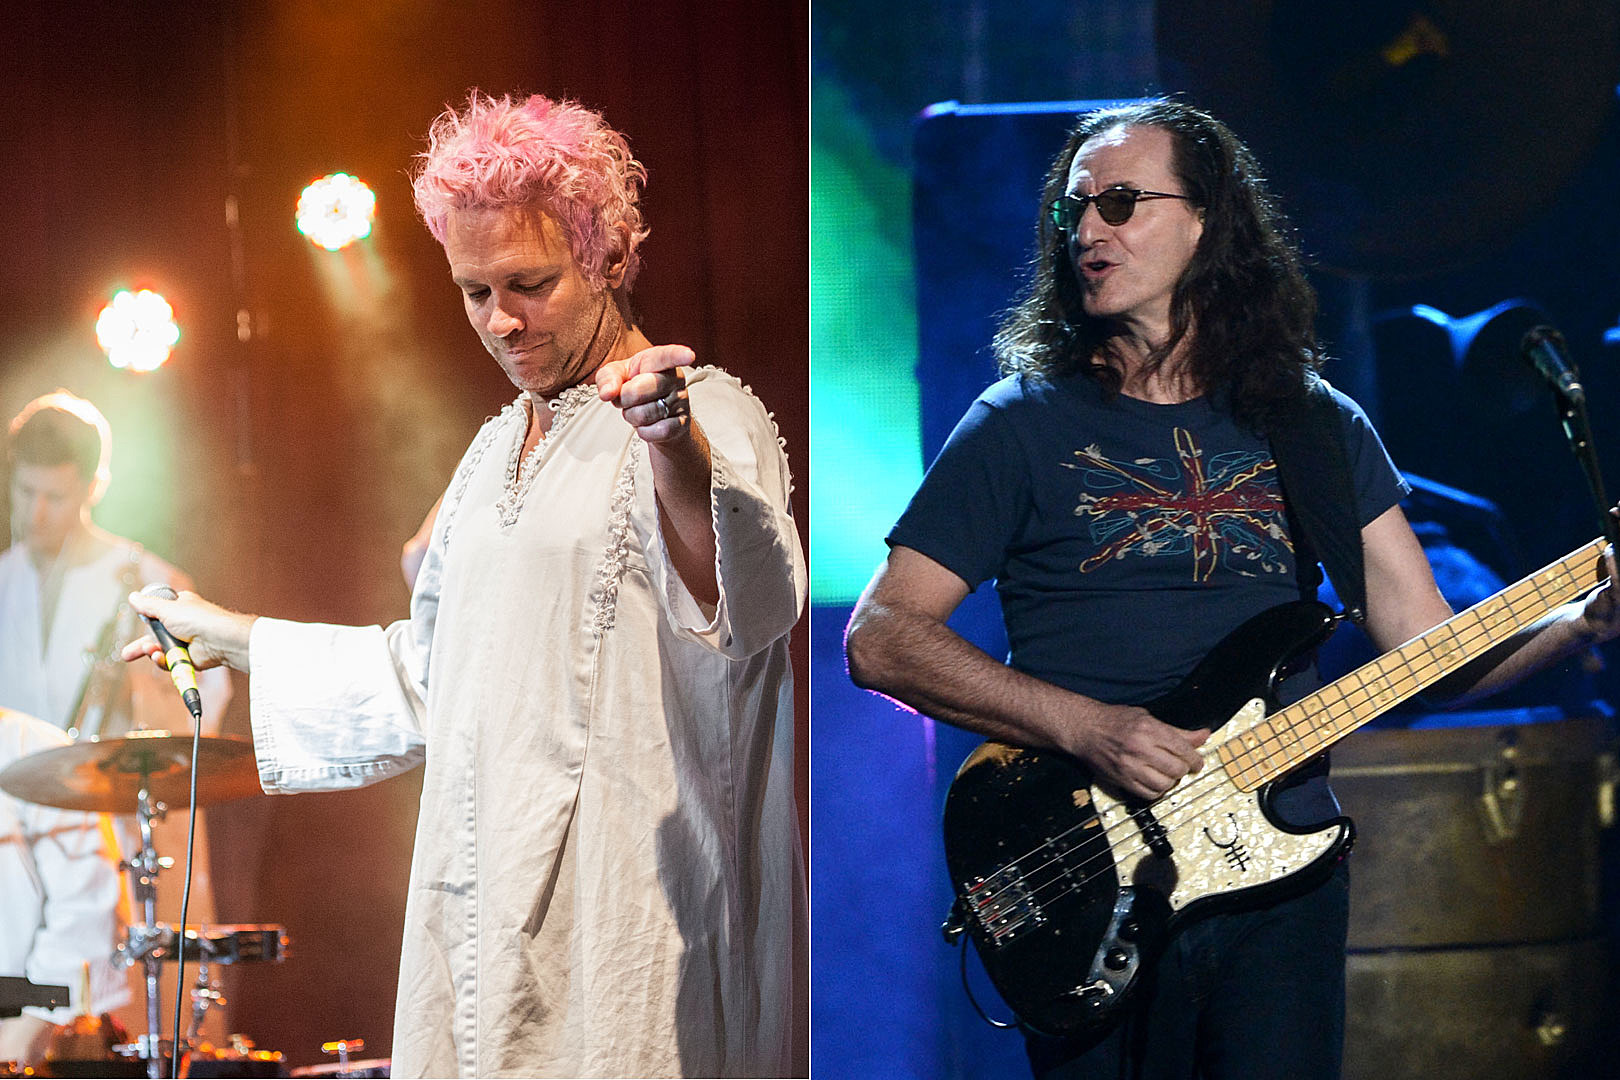 Rush's 'The Spirit of Radio' Covered by The Polyphonic Spree